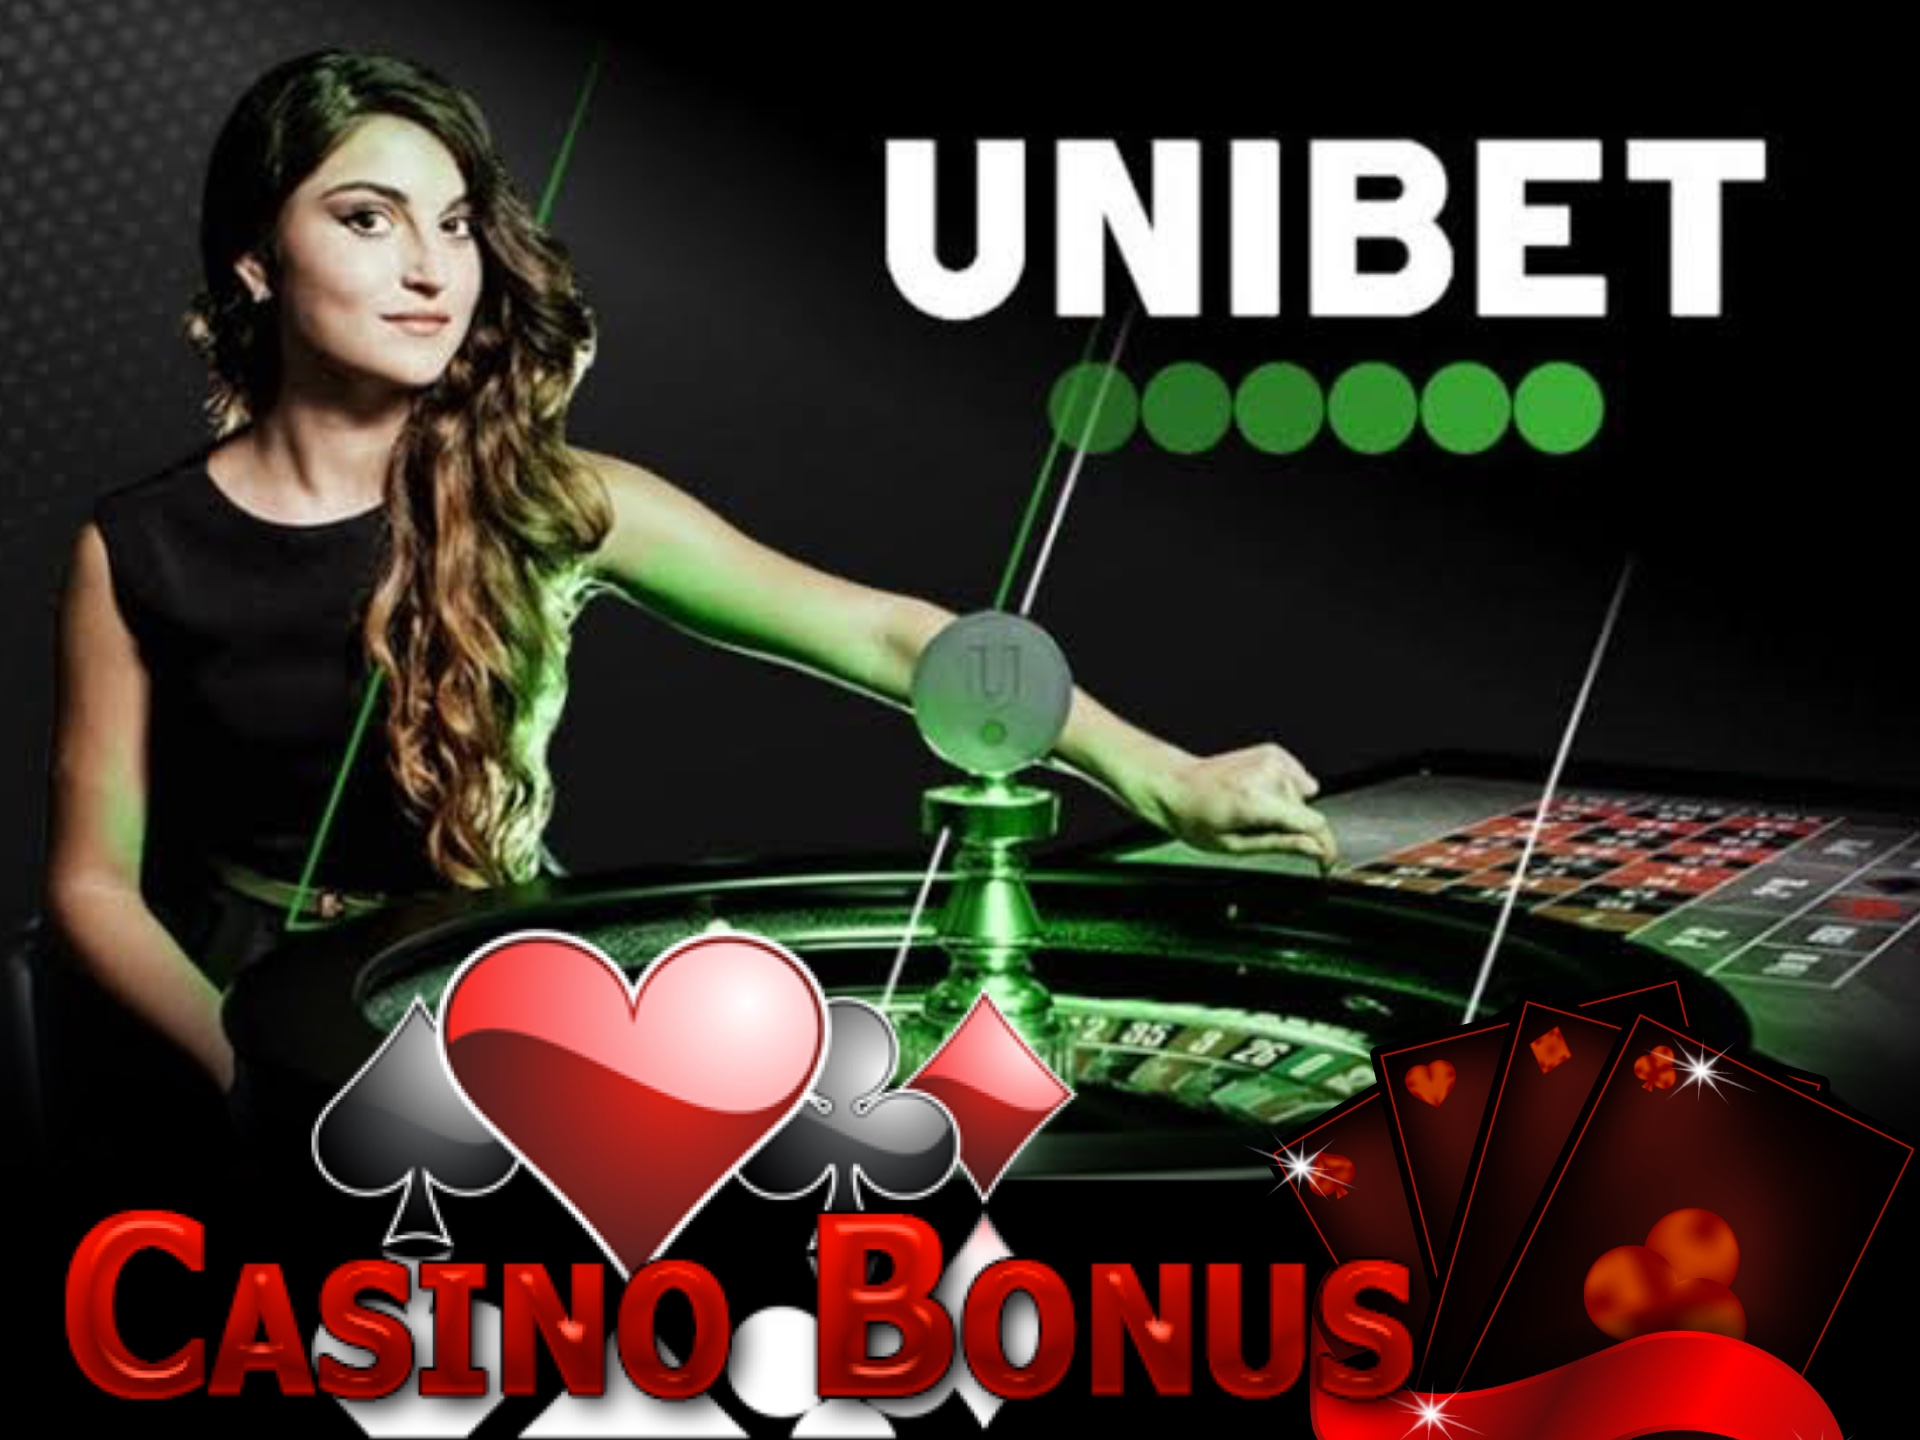 You can spend your Unibet welcome bonus on casino games.